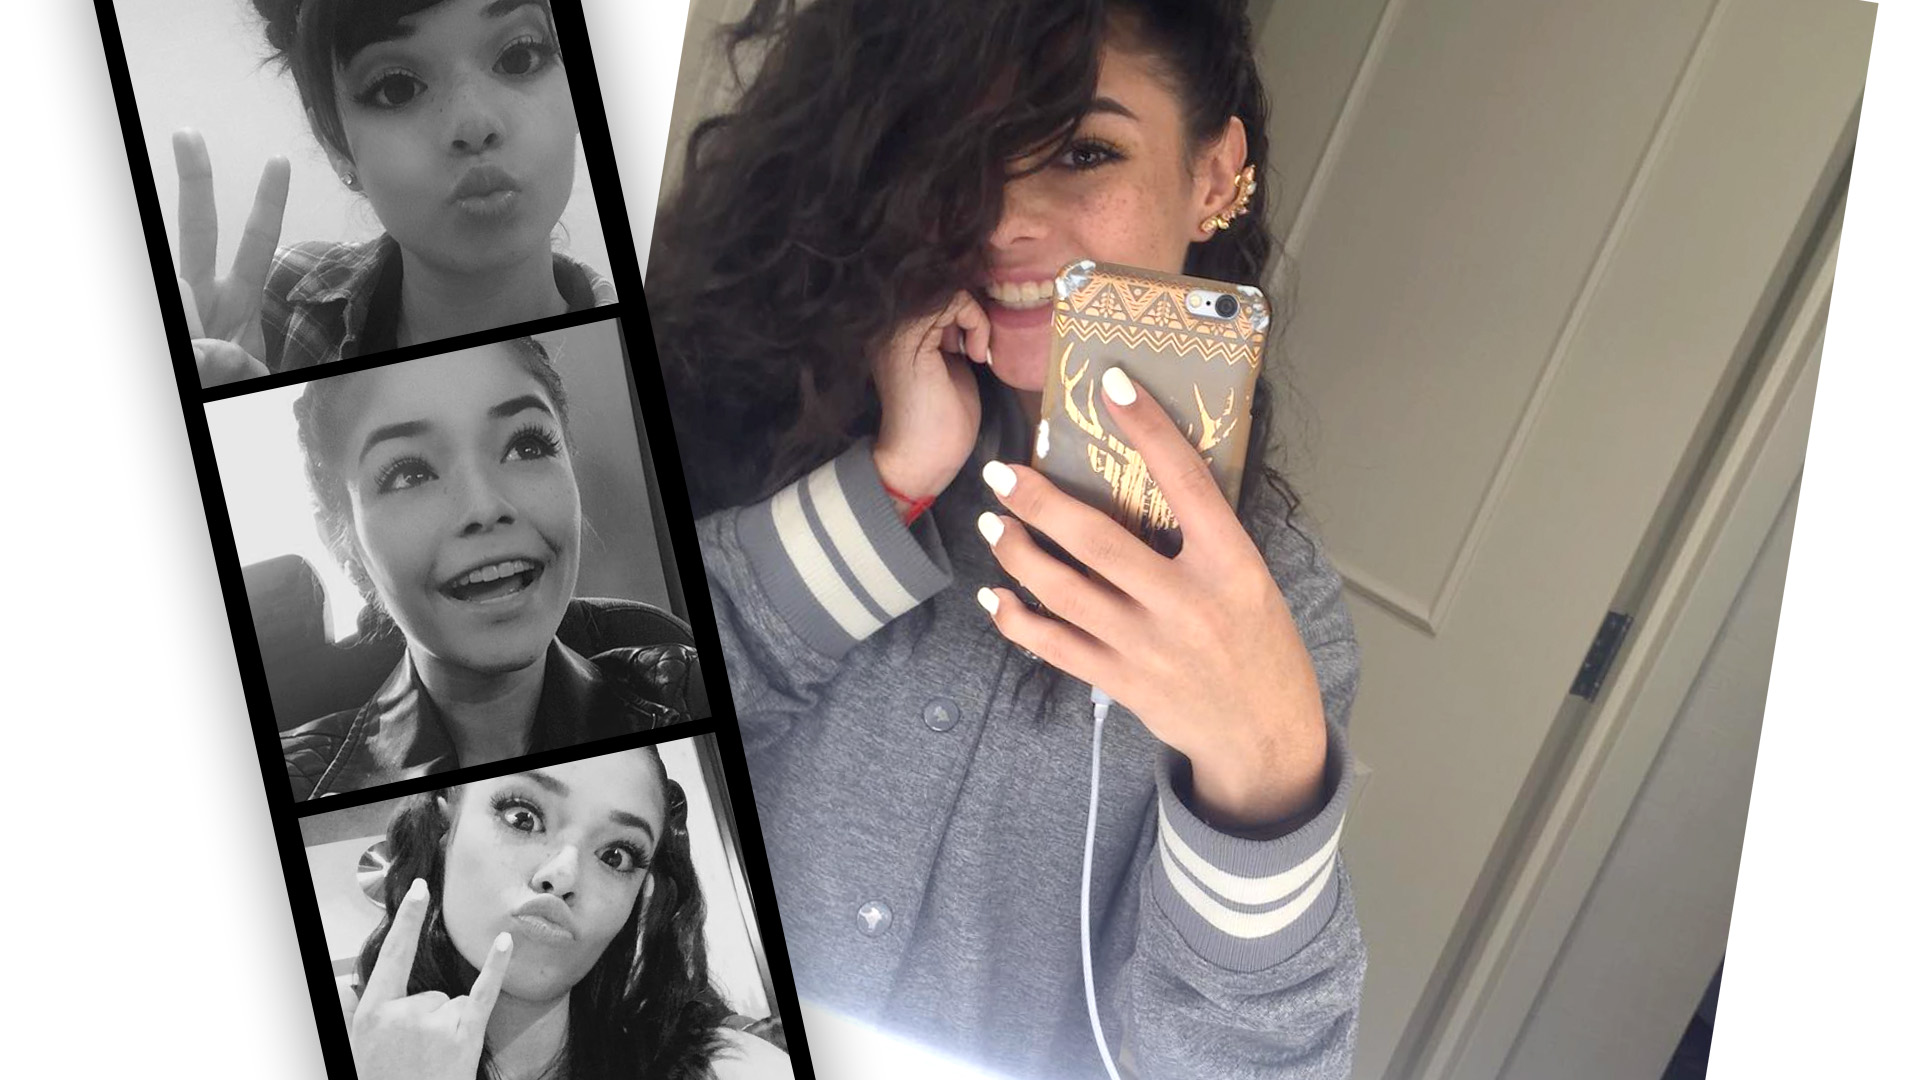 Taishmara, la sweet girl de MIX5, adora las selfies